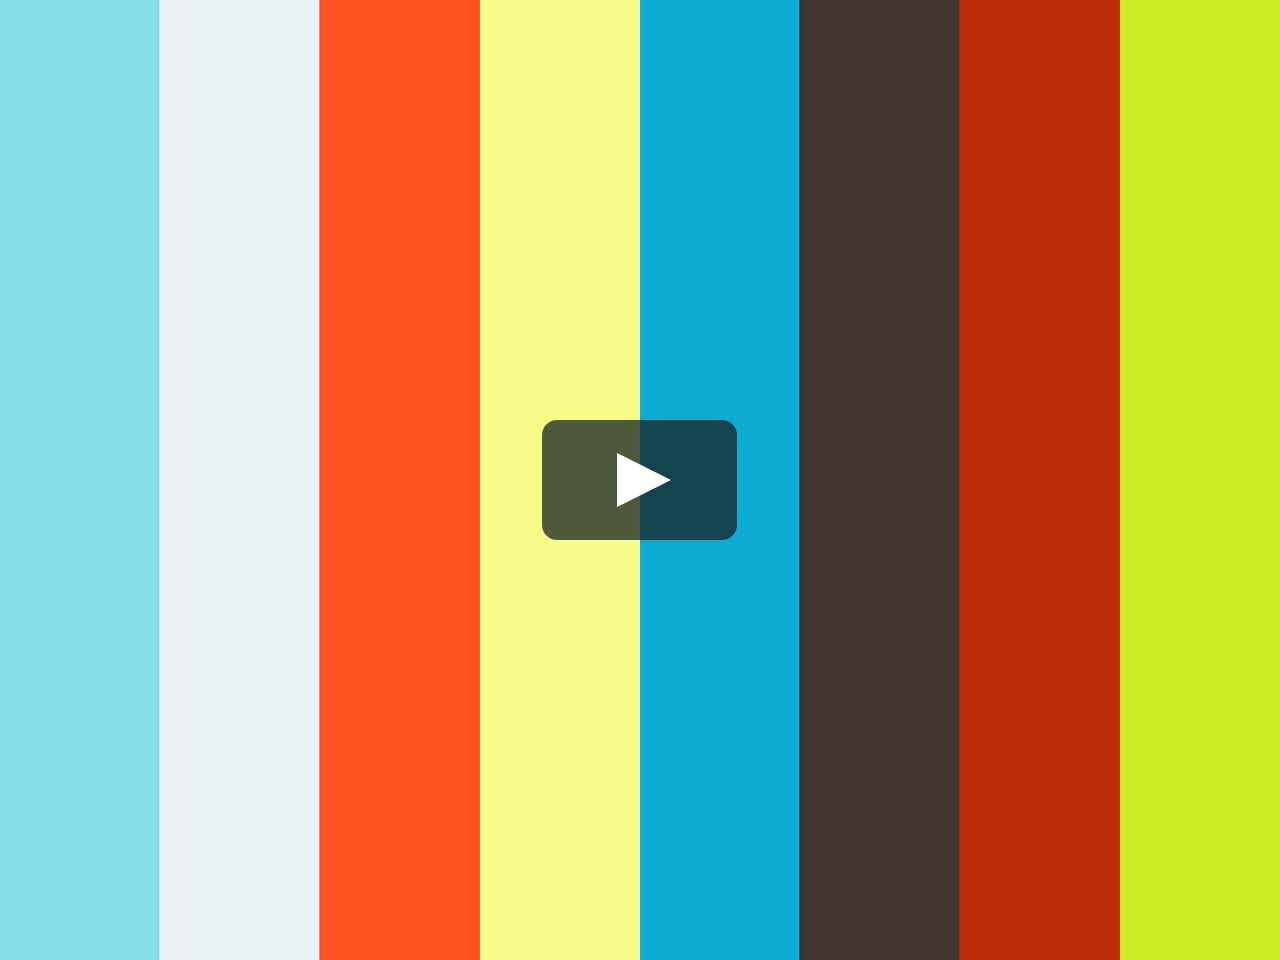 Elena Papandreou plays Nikita KOSHKIN  Megaron  concerto for guitar and orchestra - IV movement (Final)